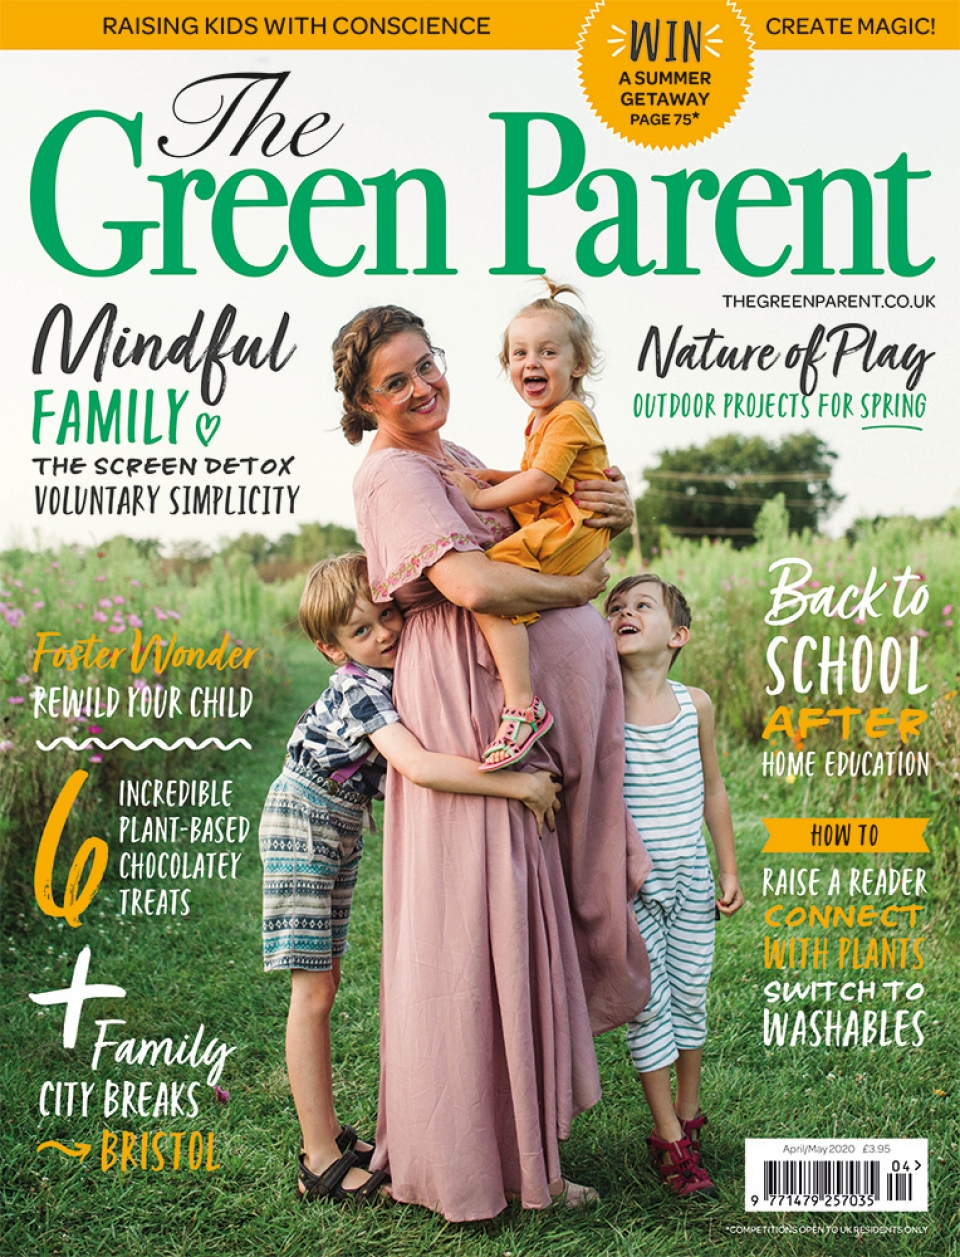 The Green Parent Issue 94 Cover